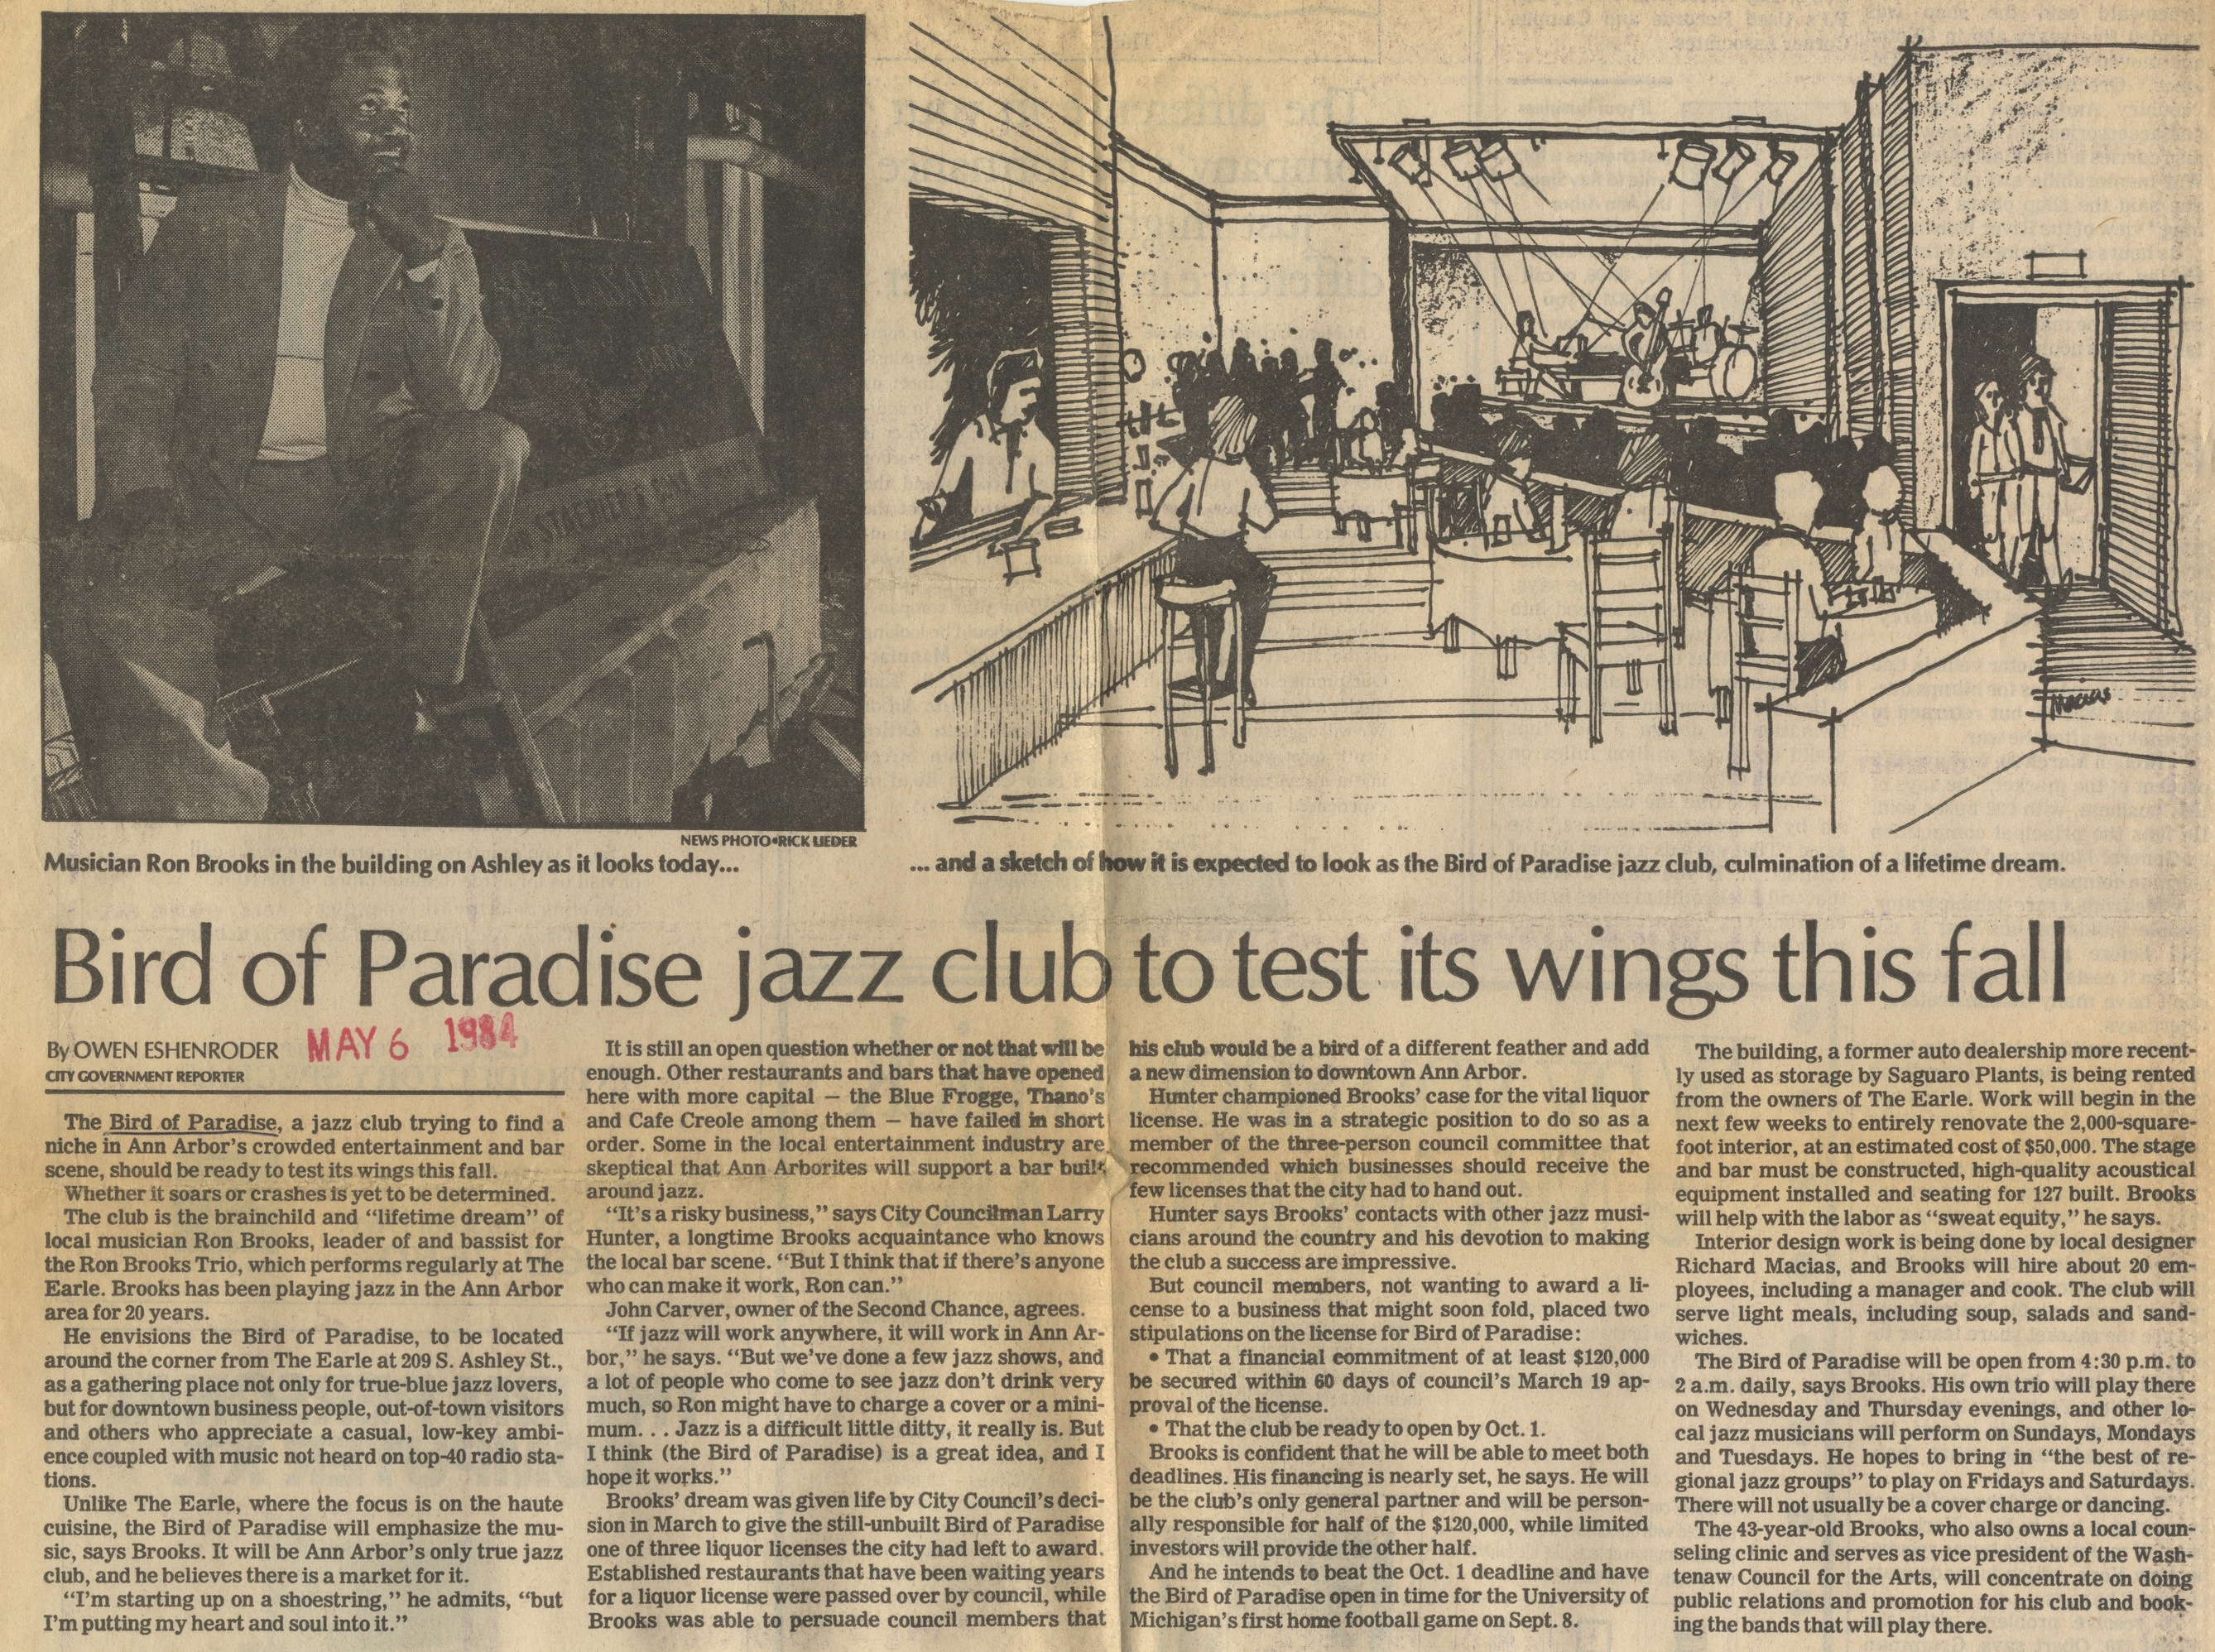 Bird Of Paradise Jazz Club To Test Its Wings This Fall image